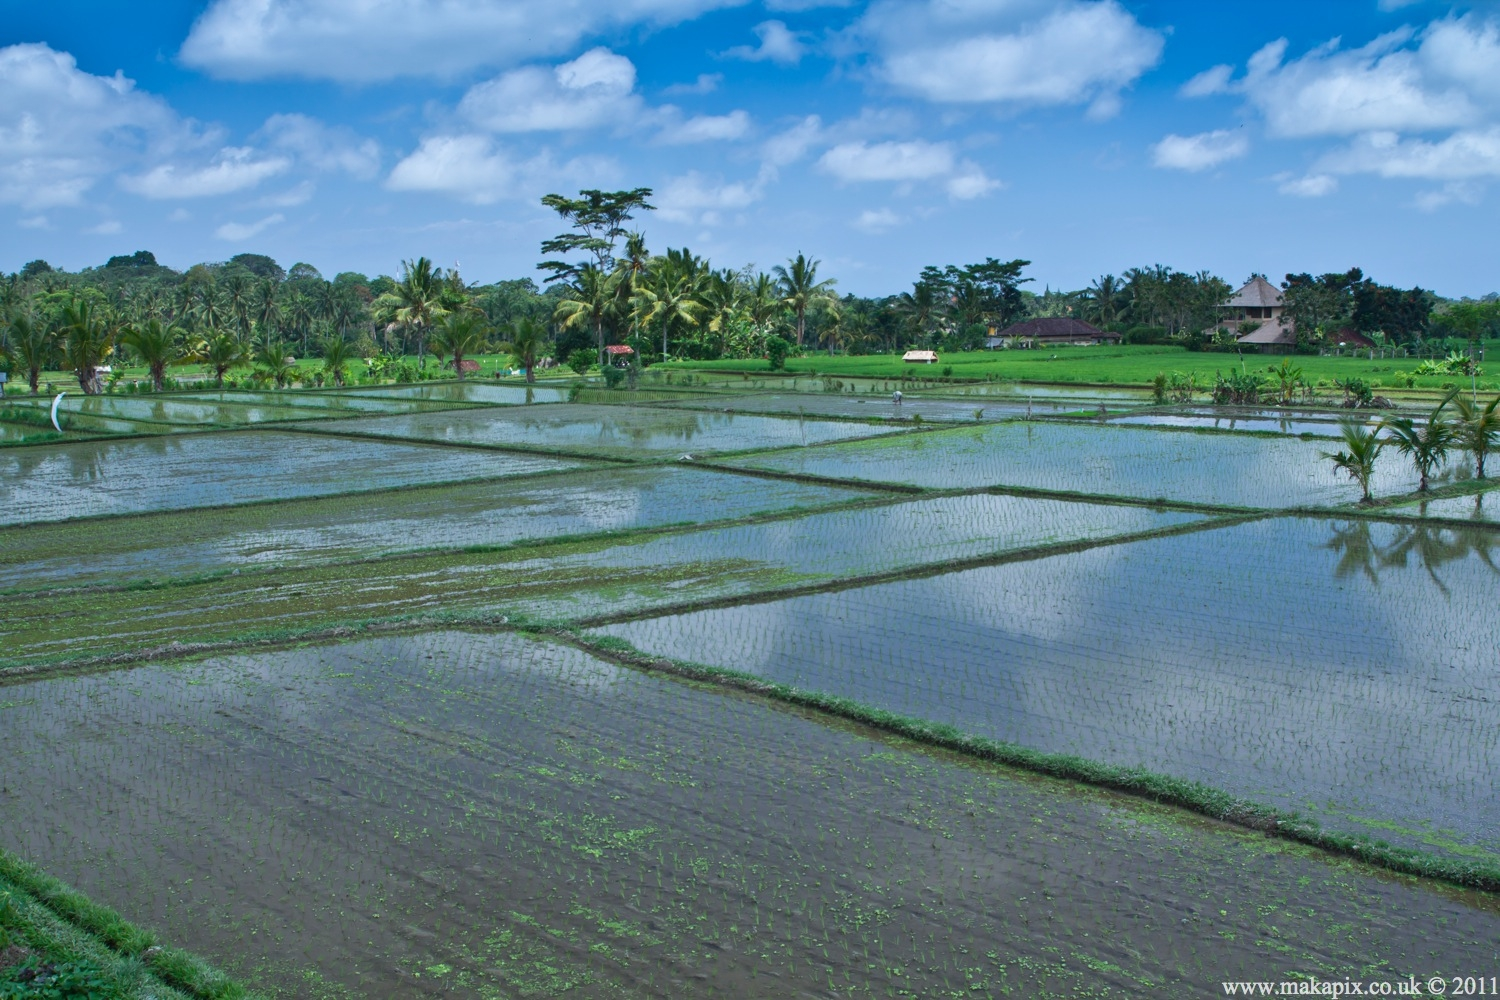 Makapix Travel Photography 187 Indonesia Rice Paddies